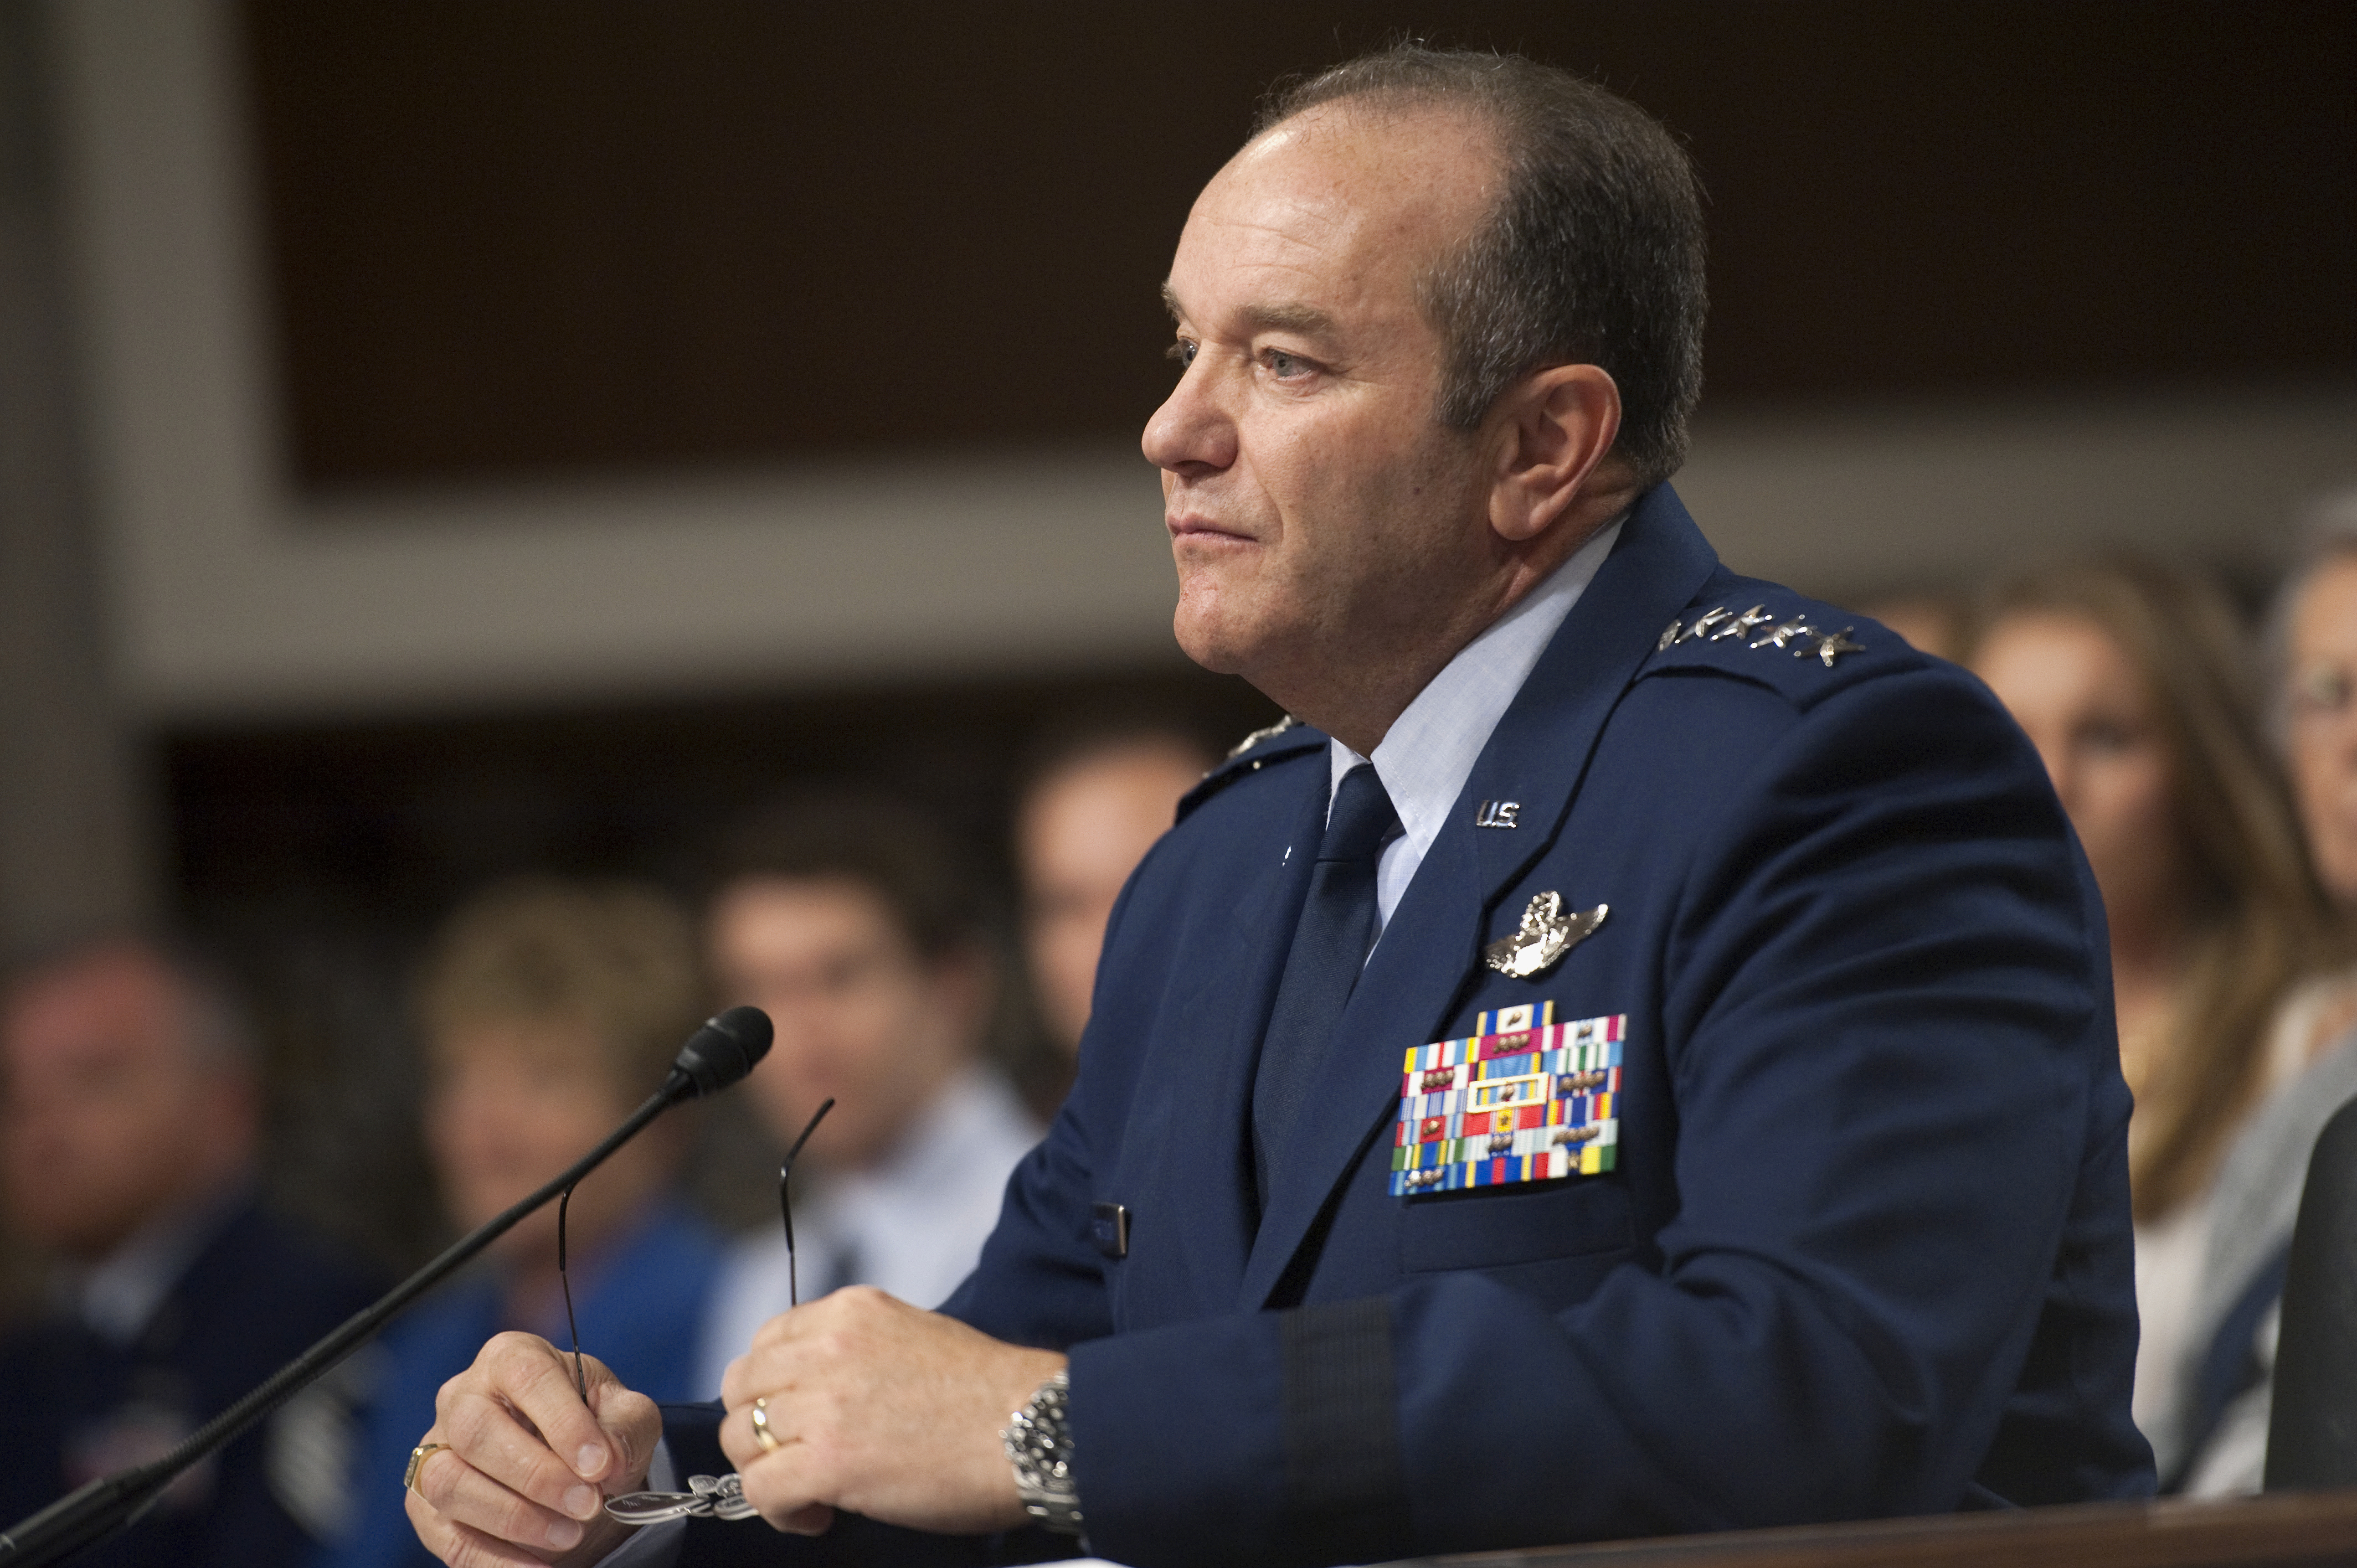 Air Force General Philip Breedlove testifies at a Senate Armed Services Committee hearing on April 11, 2013.